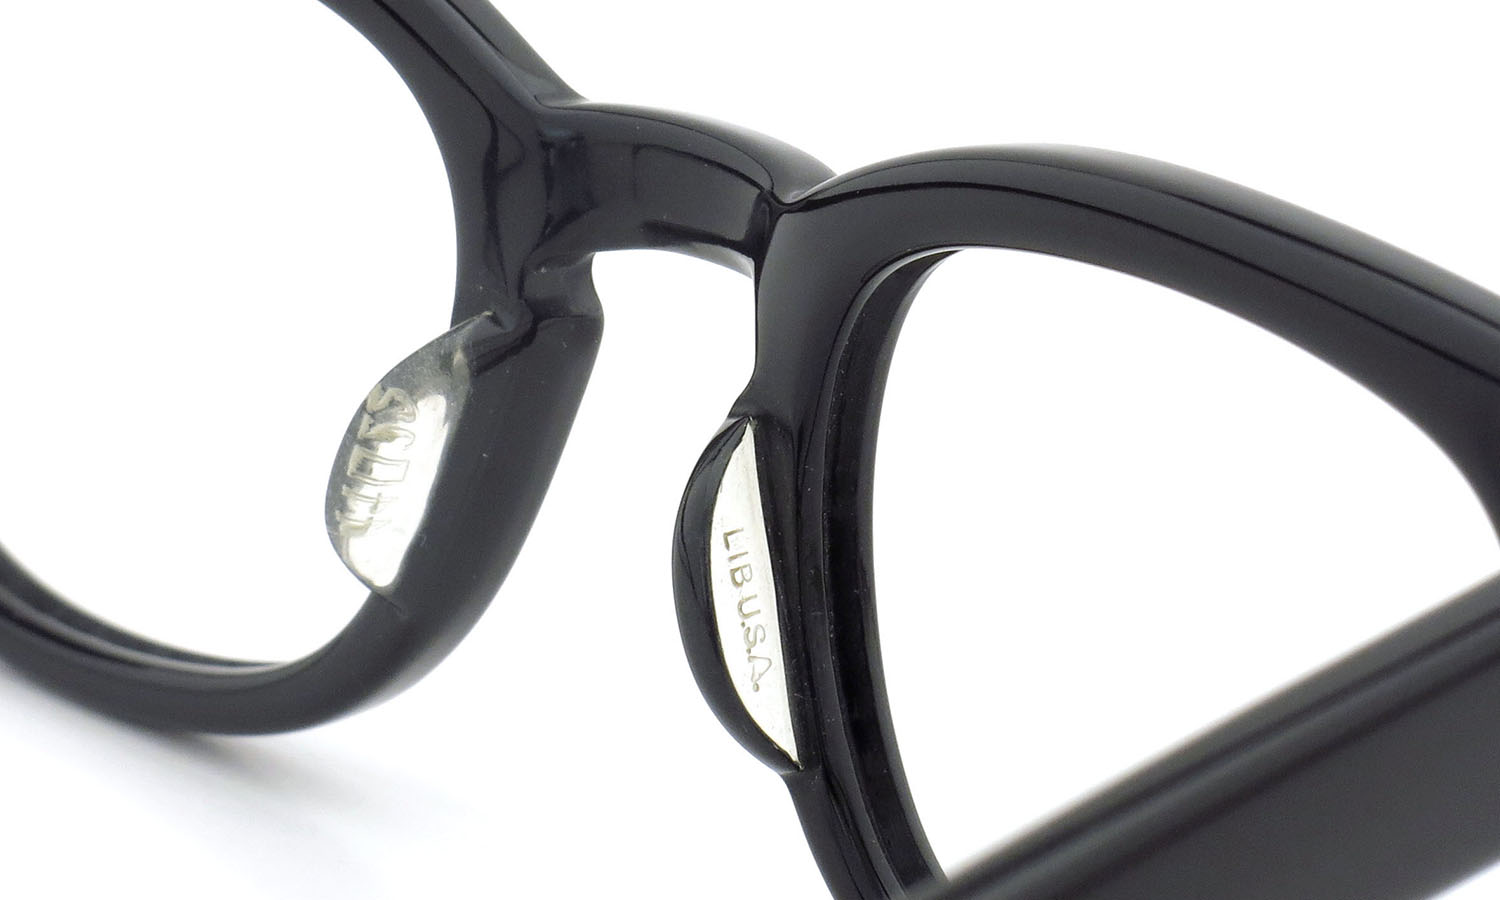 LIBERTY Optical 1950's vintage メガネ 9-PAR BLACK 44-20 8